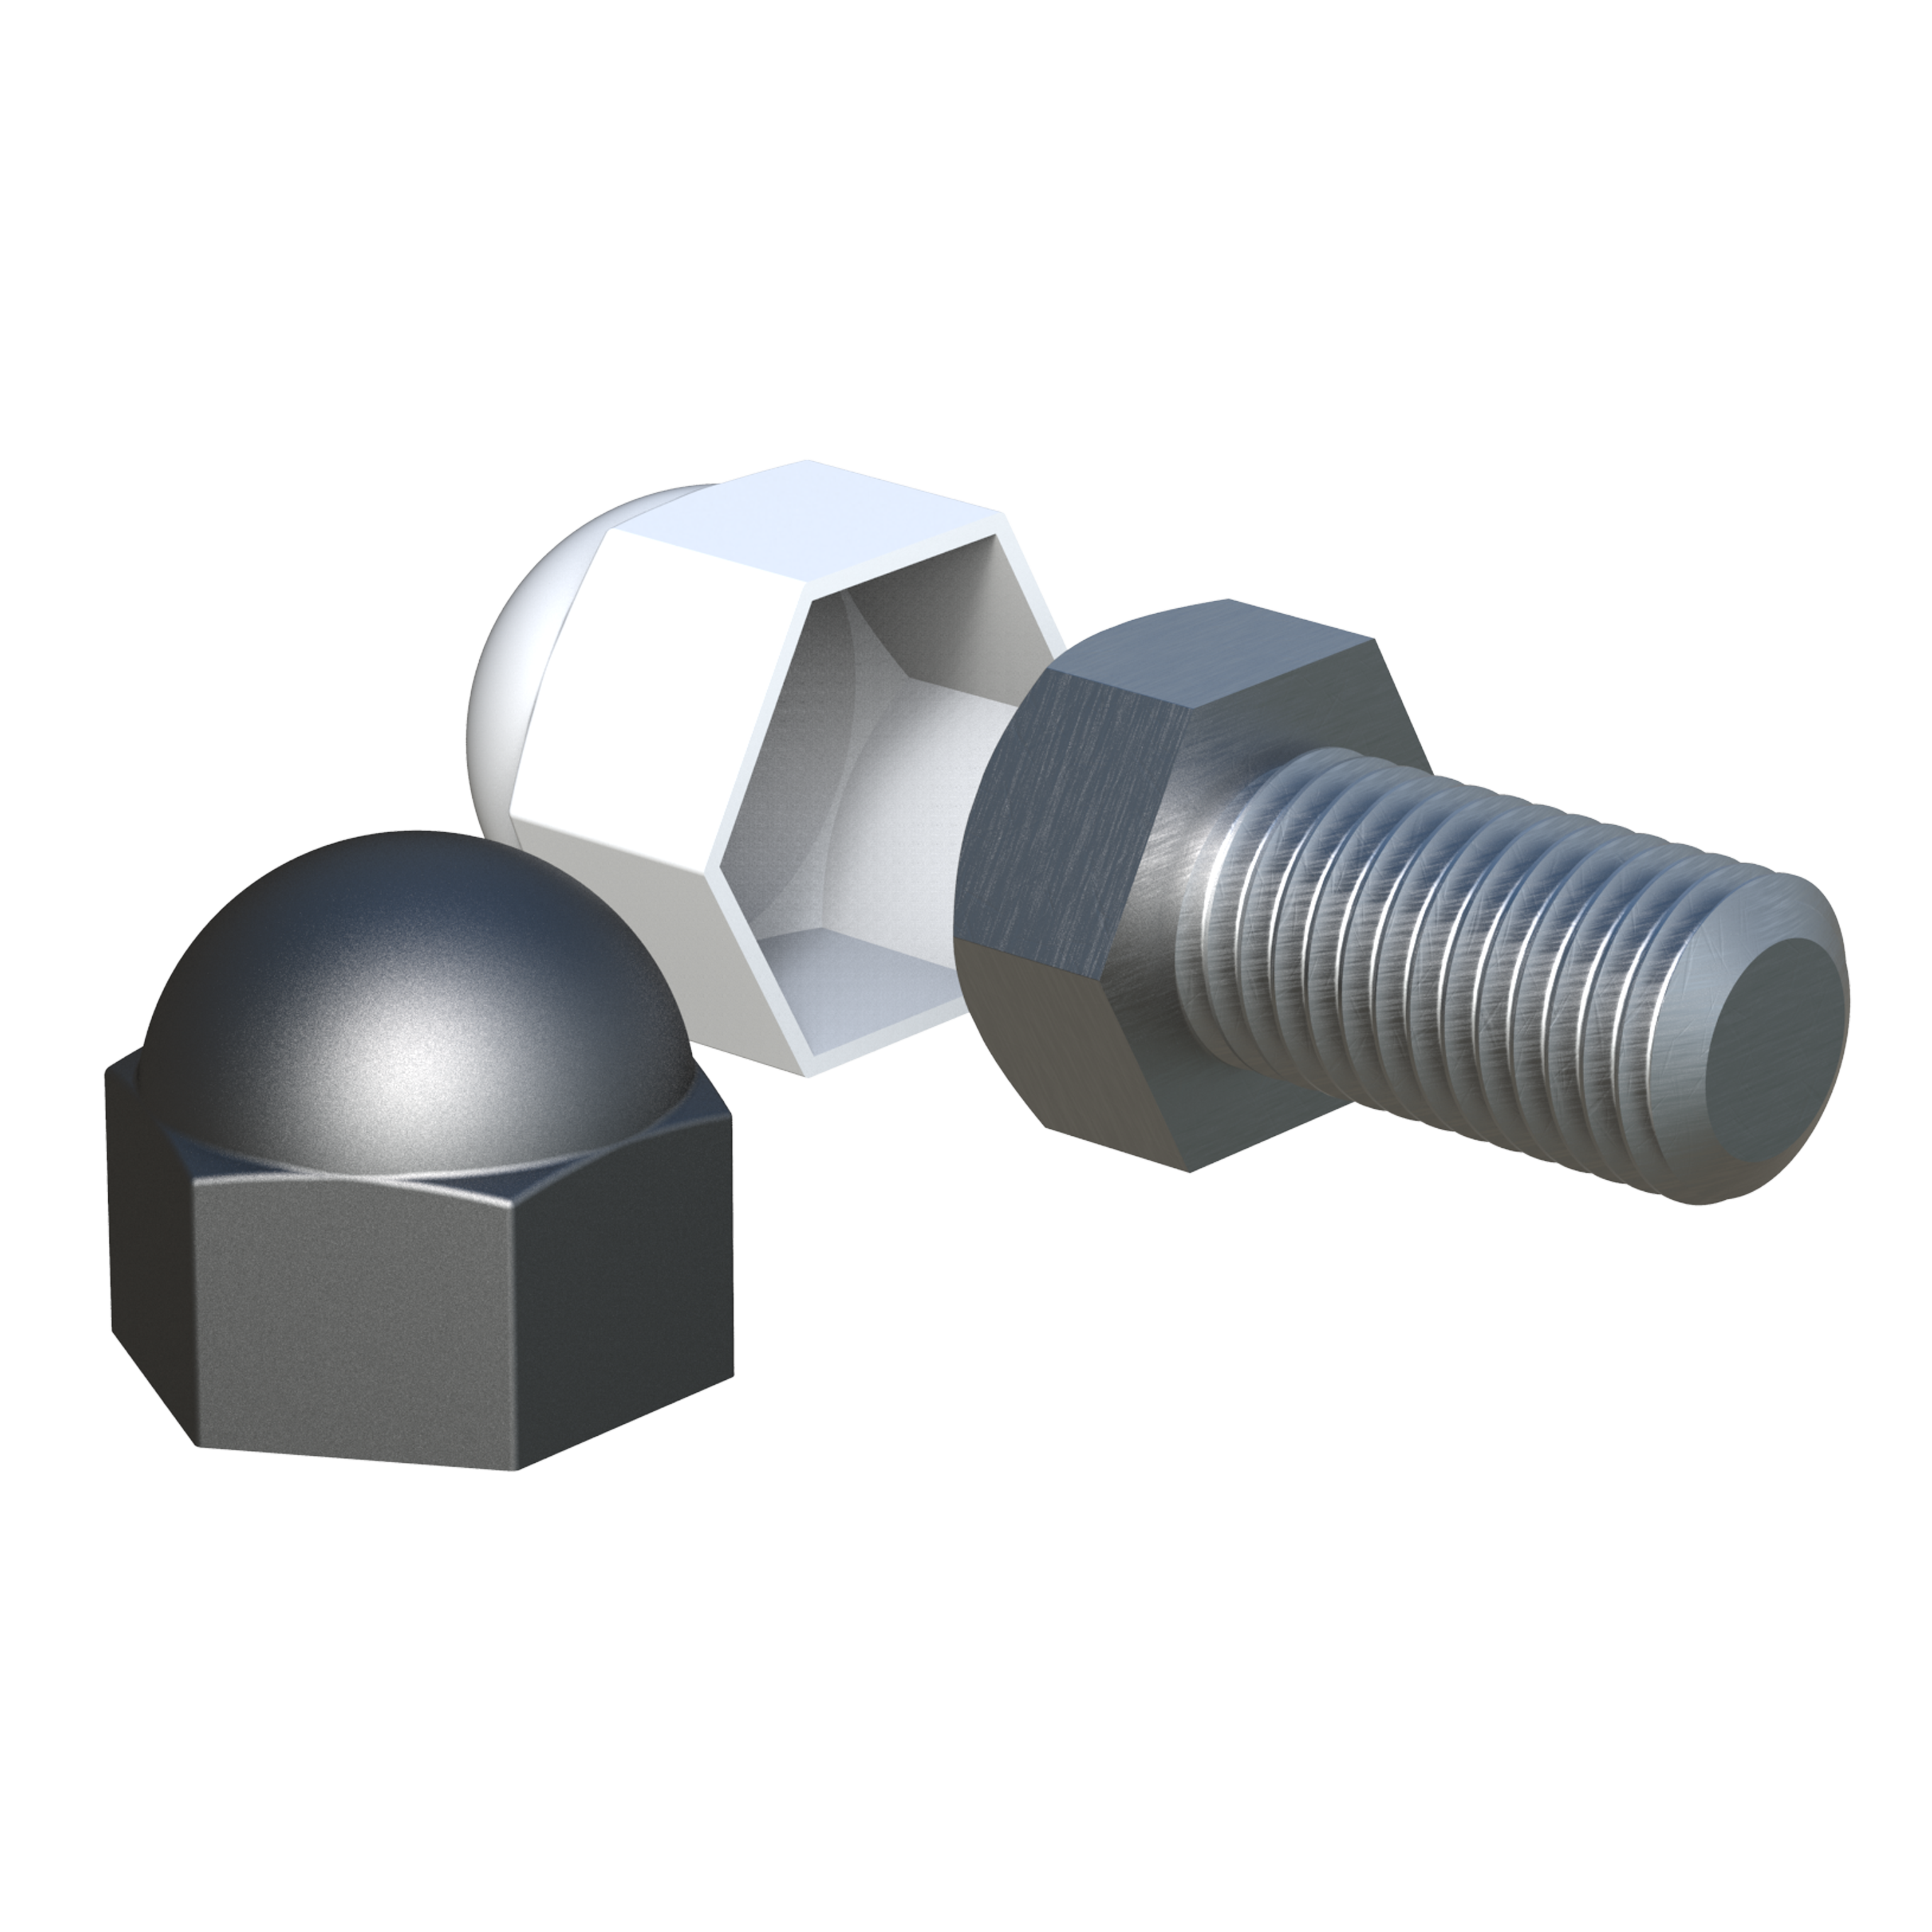 Protection cap for hexagon nuts